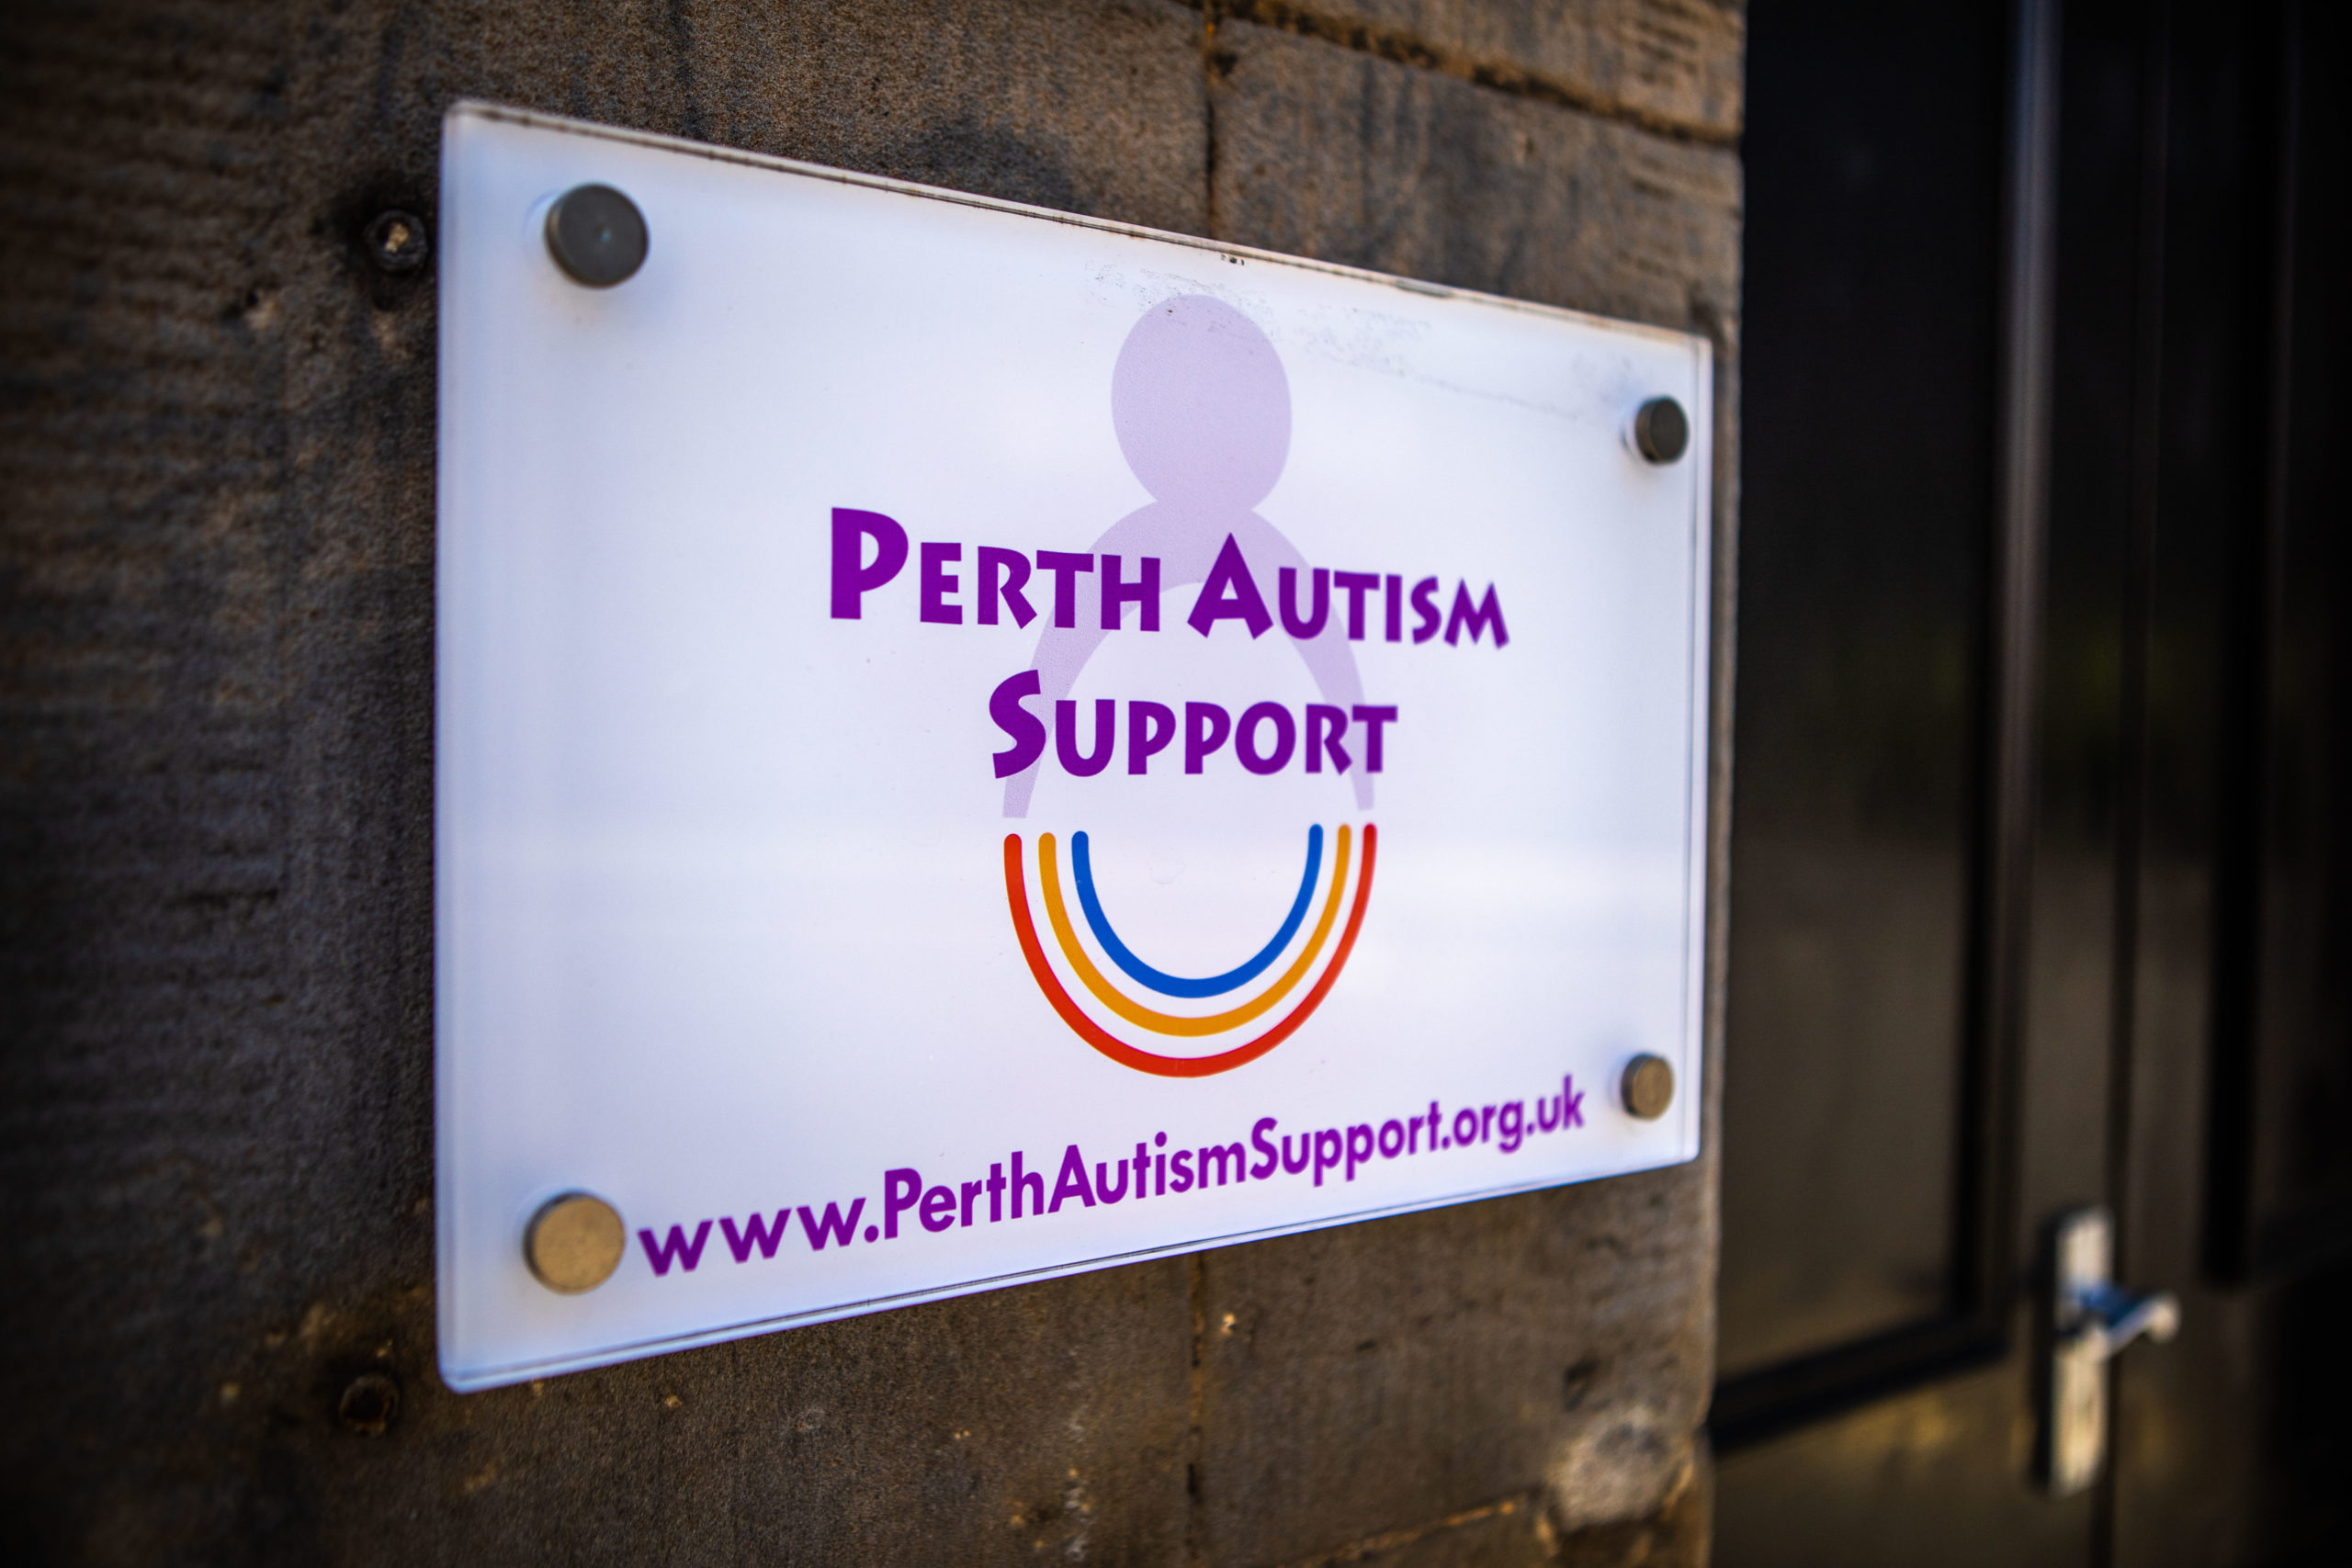 Perth Autism Support is one of the organisations calling for greater public understanding.